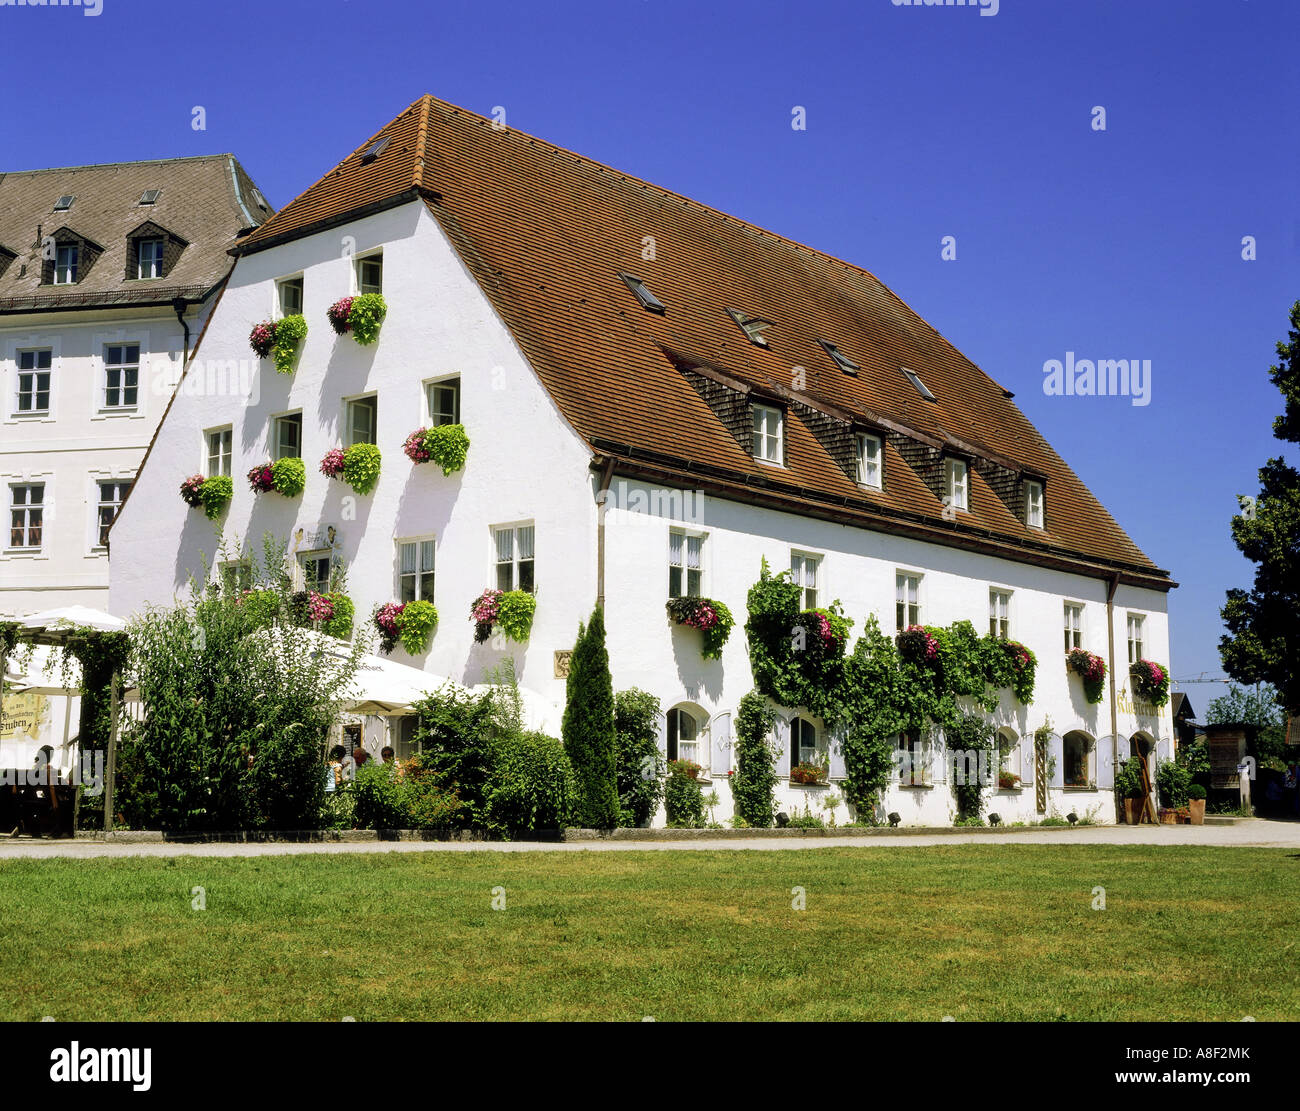 geography / travel, Germany, Bavaria,  Frauenchiemsee, gastronomy, restaurant Klosterwirt, exterior view, Additional Stock Photo